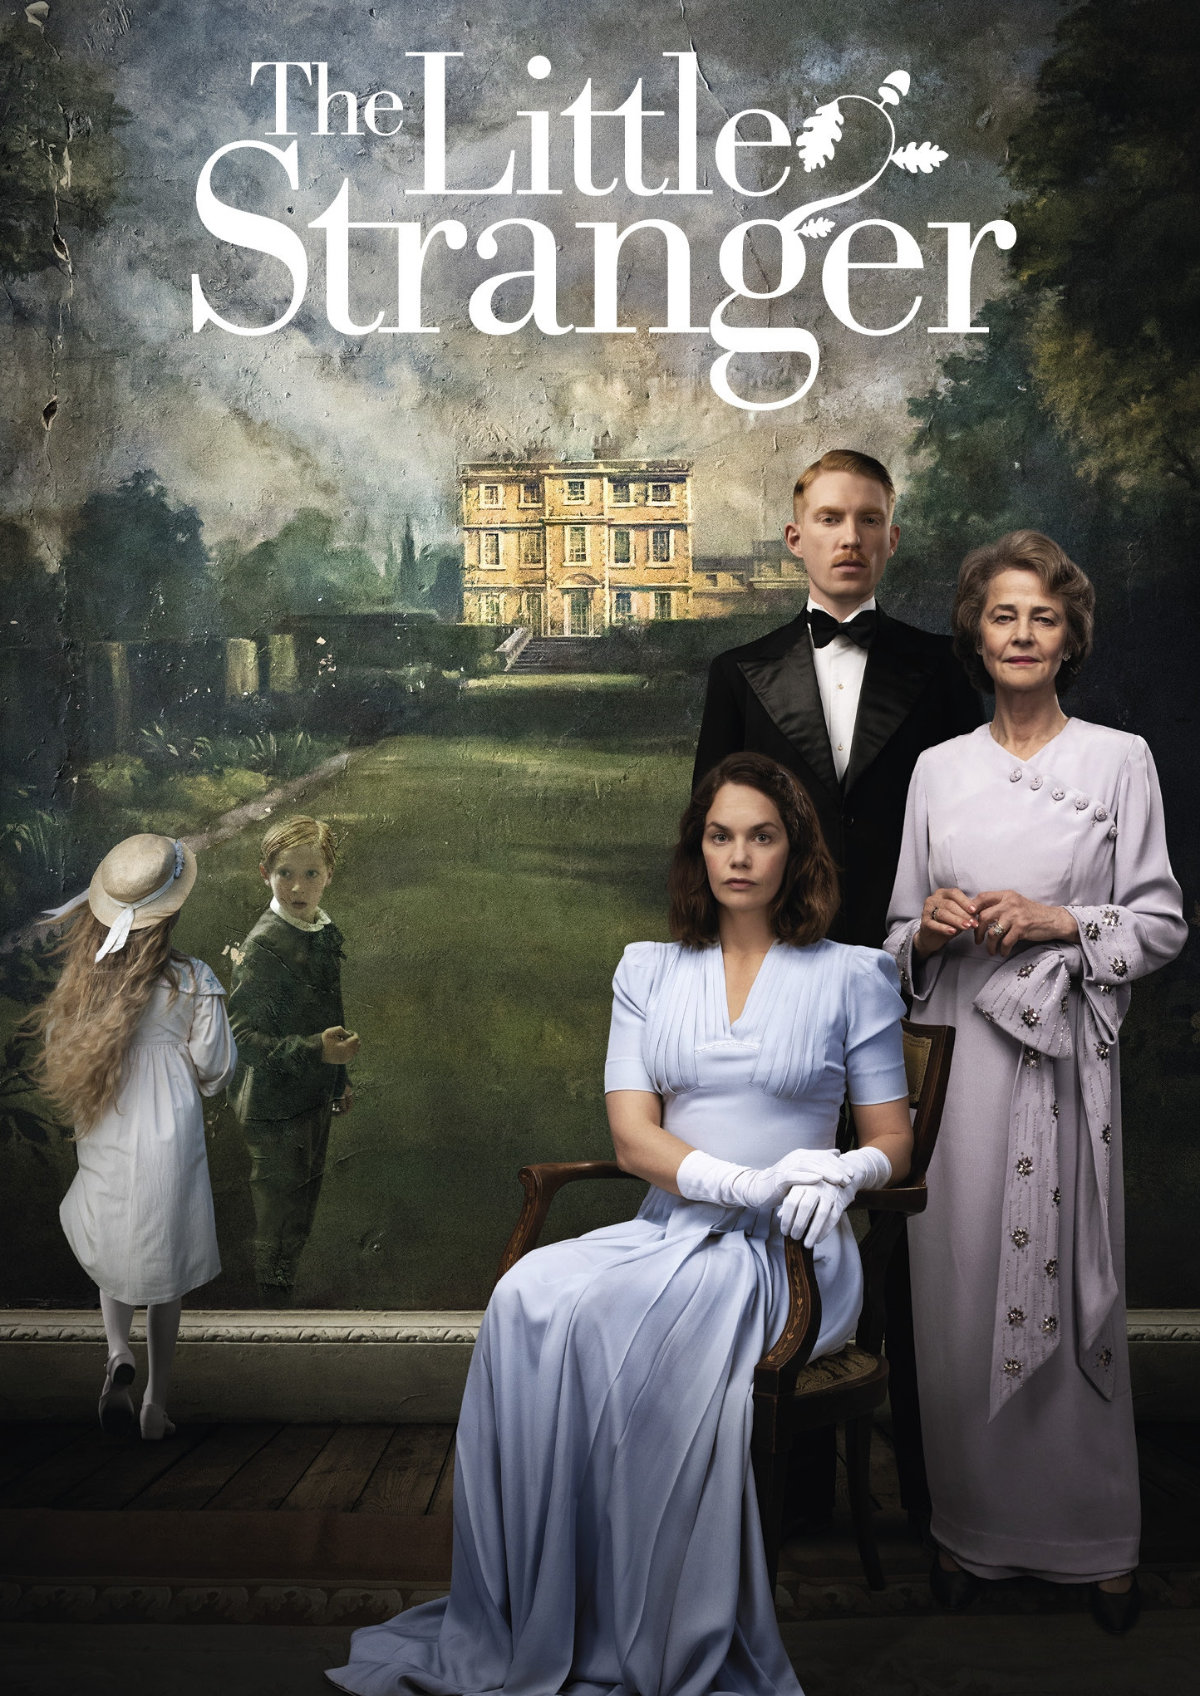 'The Little Stranger' movie poster